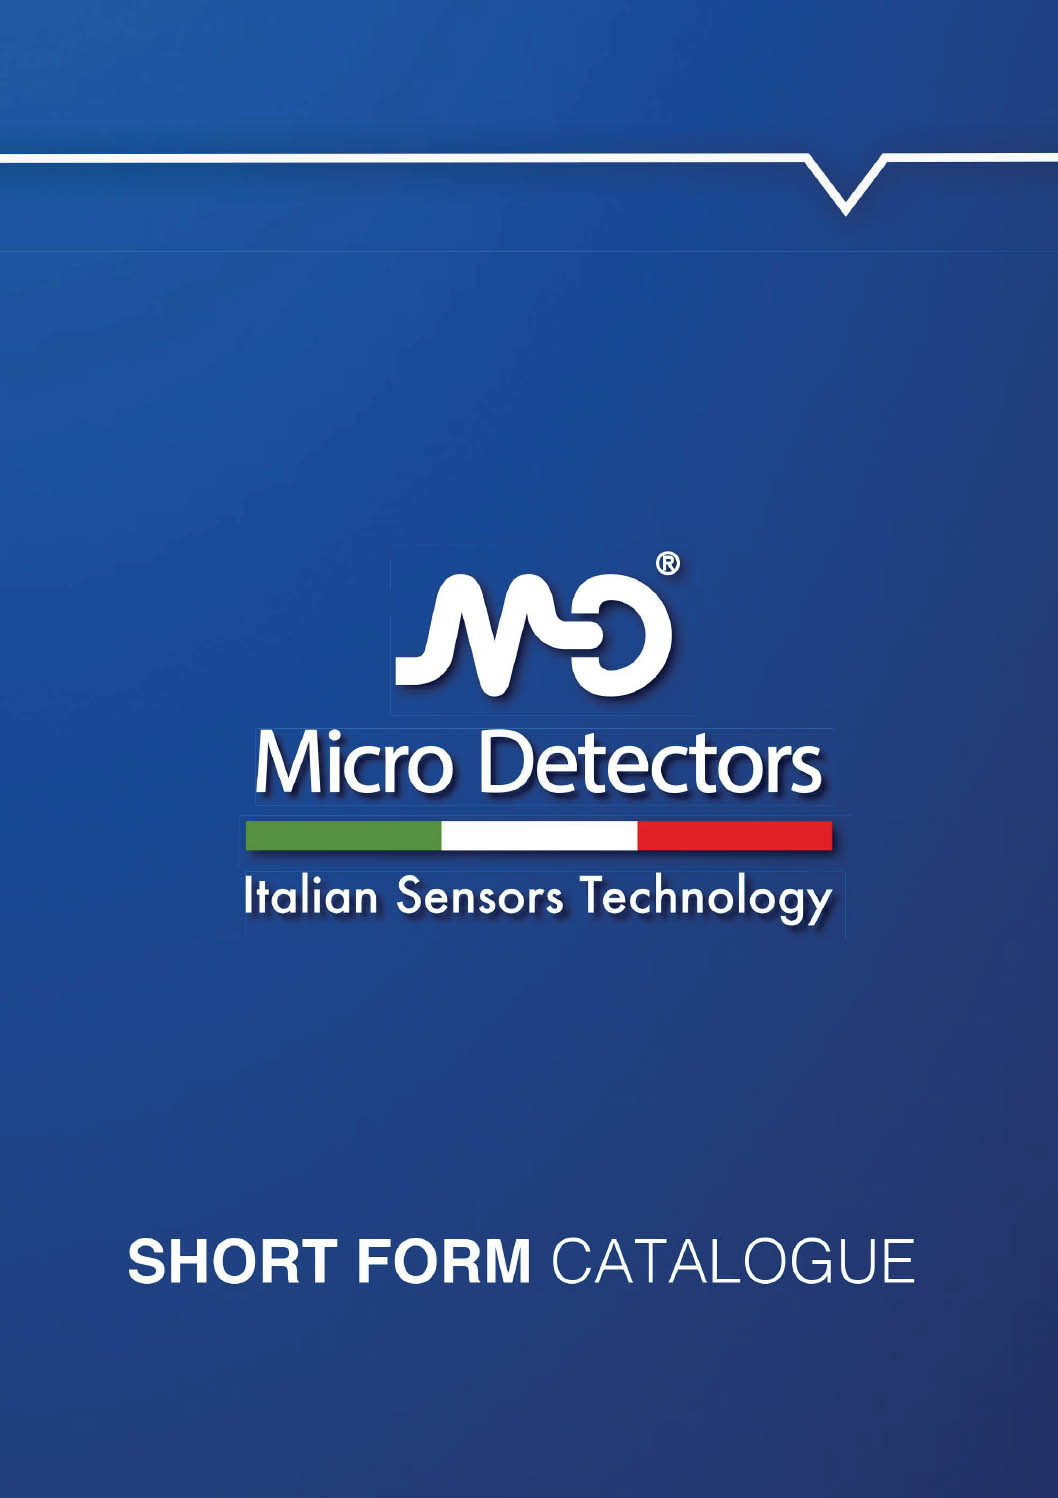 Micro Detectors Short Form Catalogue supplied by ElectroMechanica